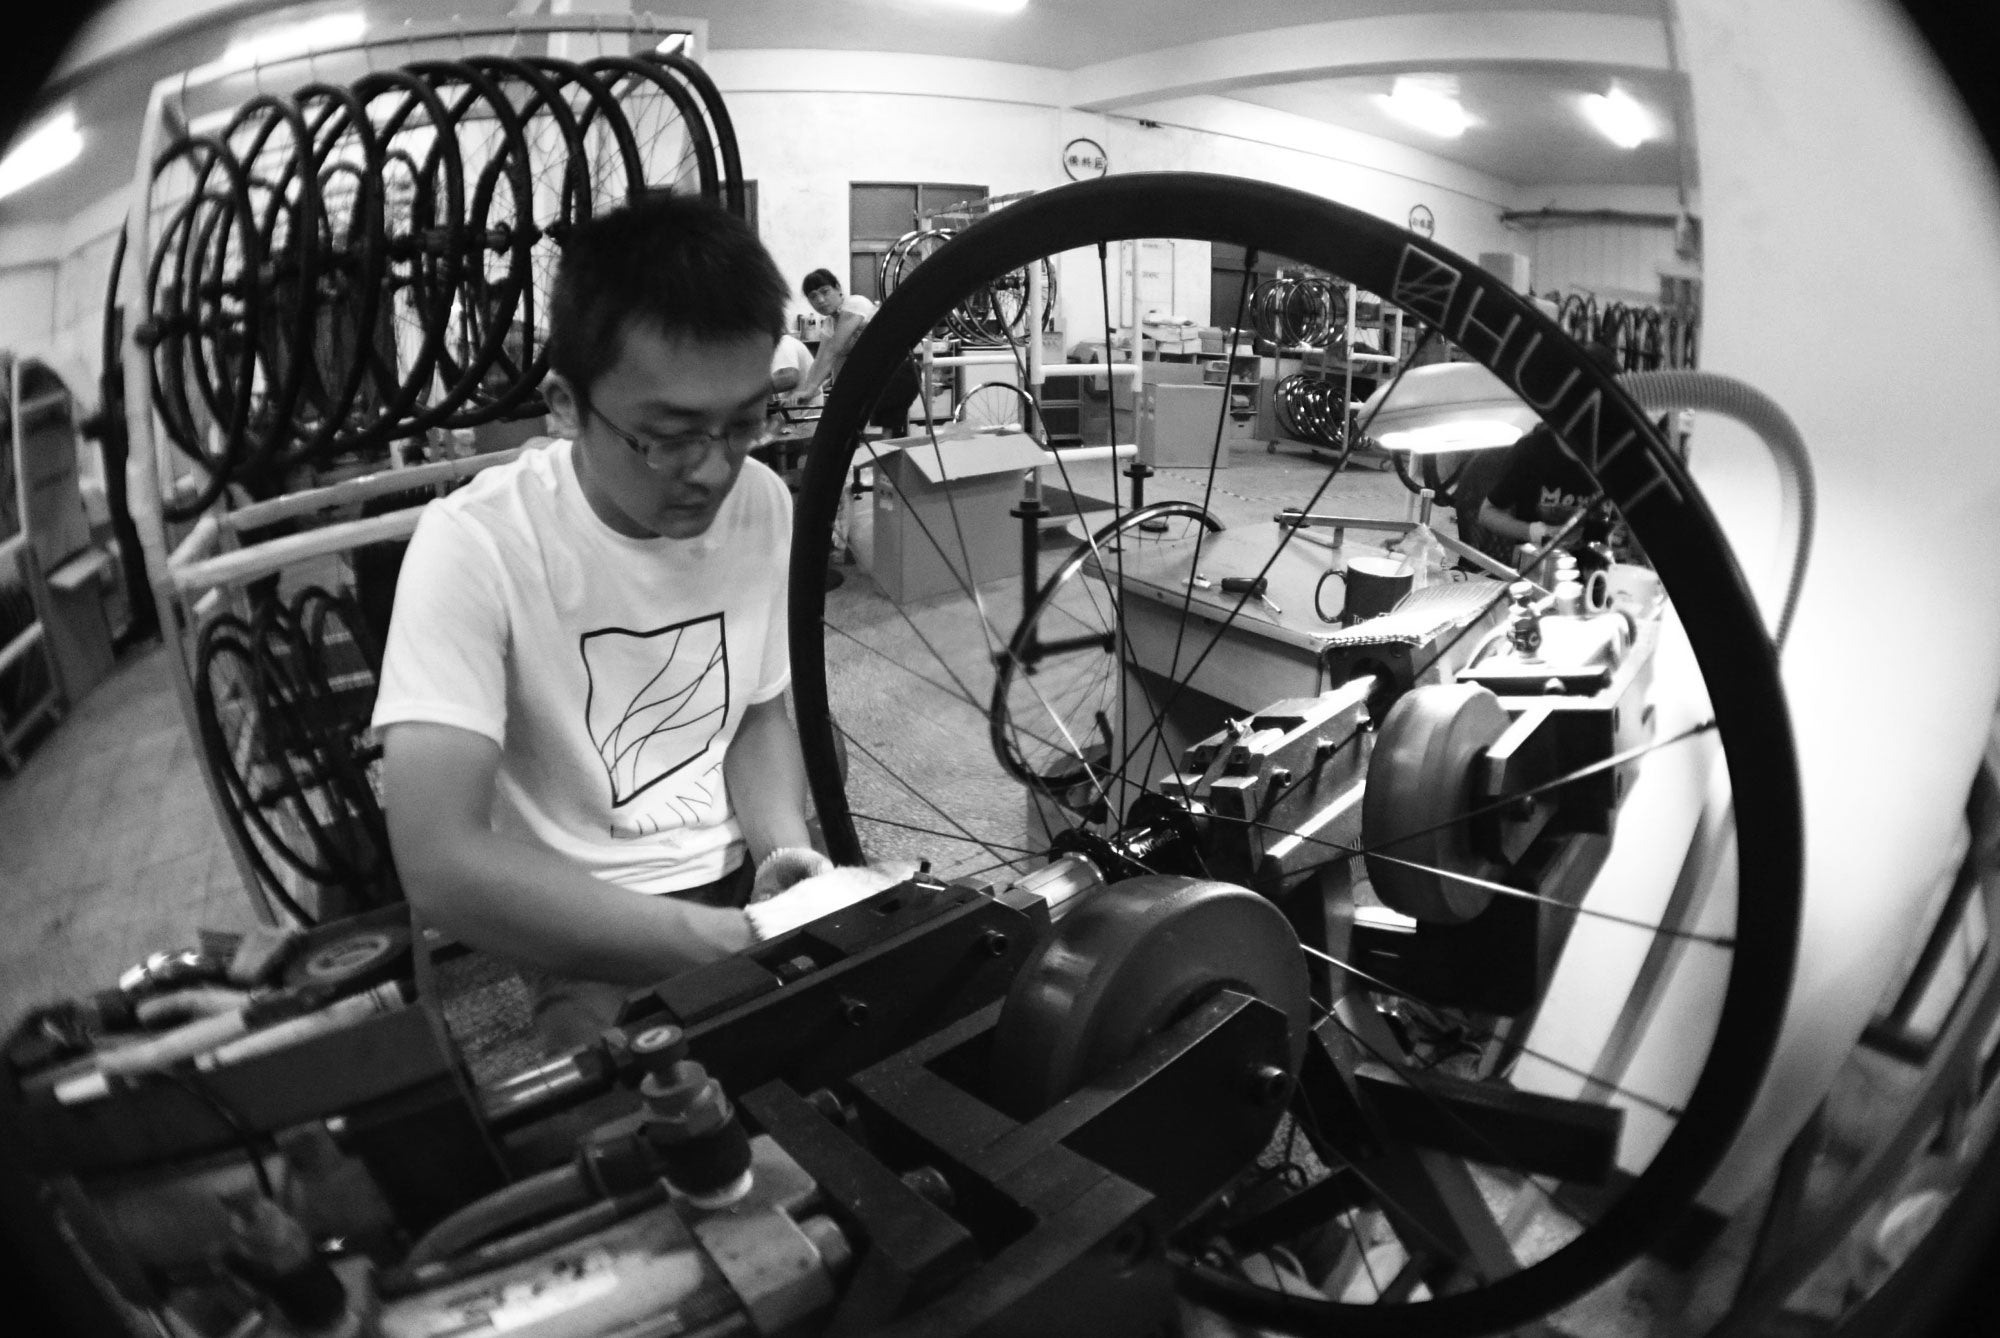 Mr. Hao Cheng Nov 15 who has been hand building our wheels since since we started